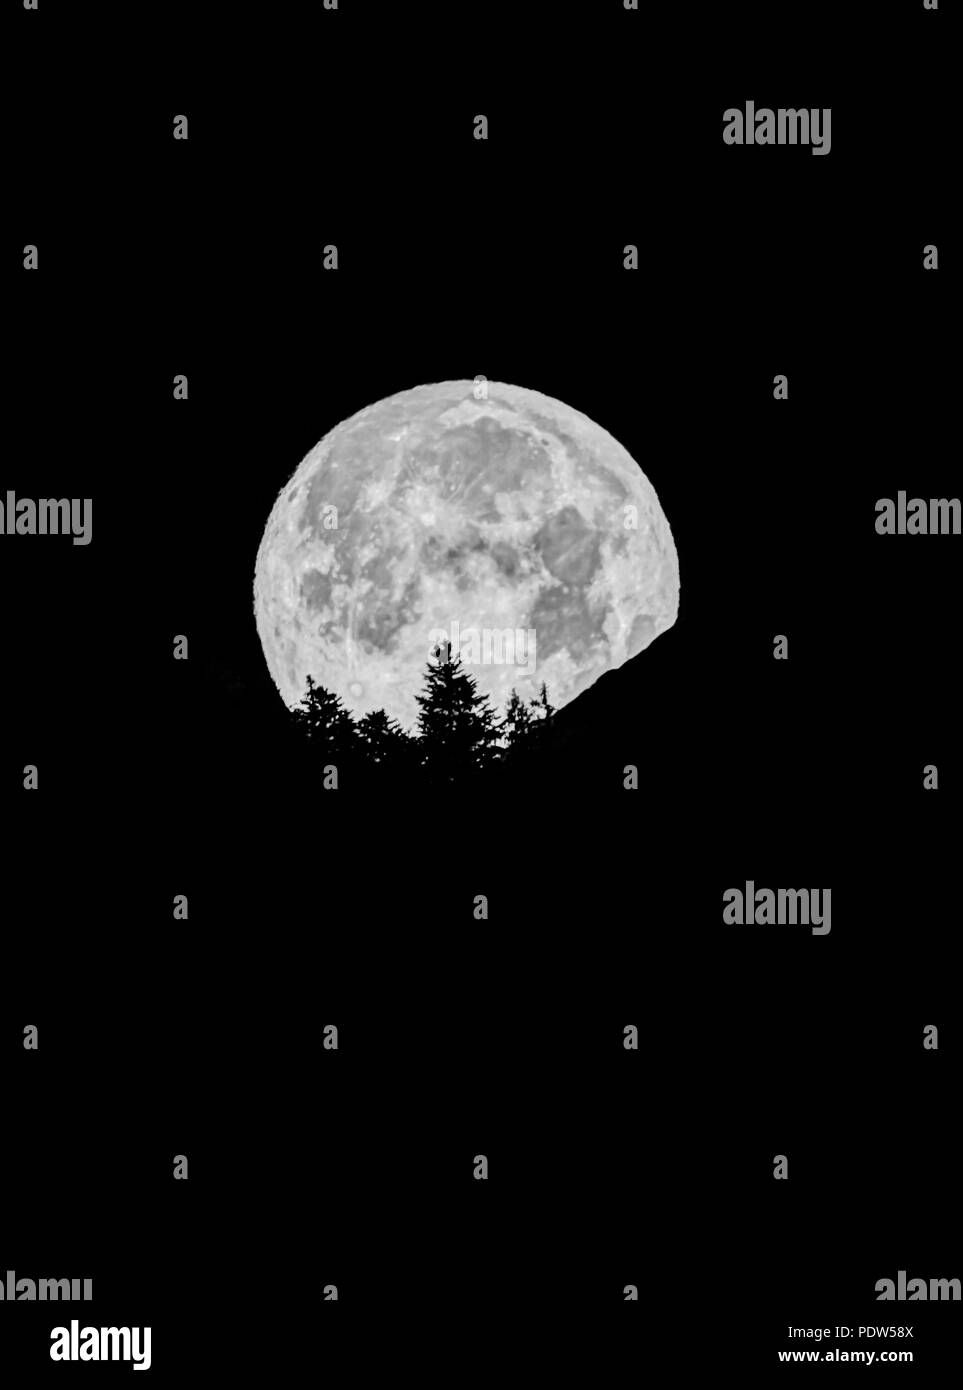 A full moon disappears behind a mountain and tree silhouette in a black night sky - Stock Image